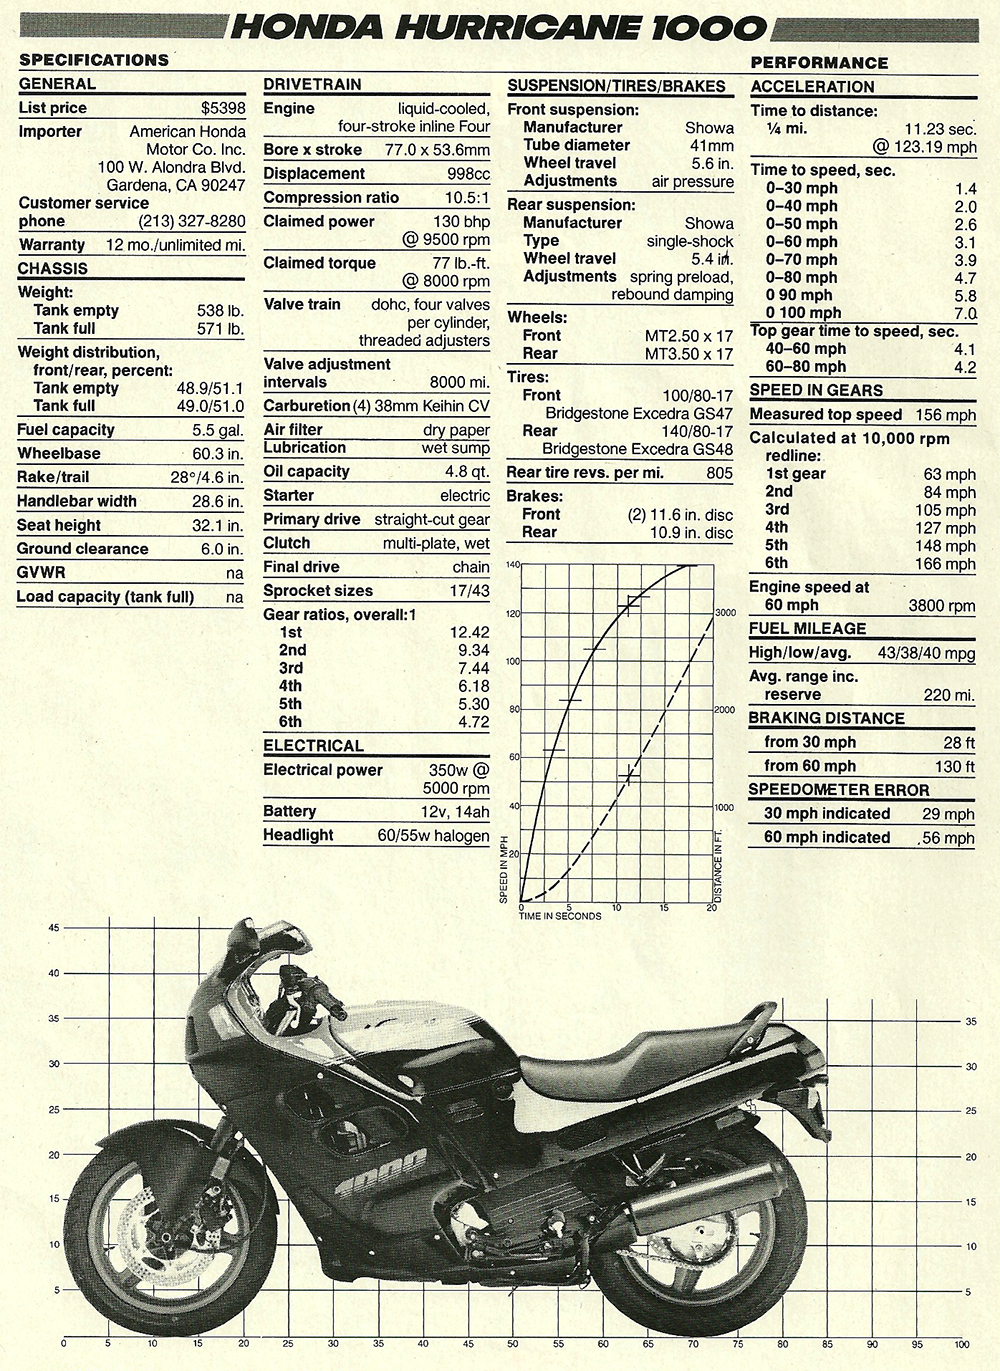 1987 Honda Hurricane 1000 road test 08.jpg